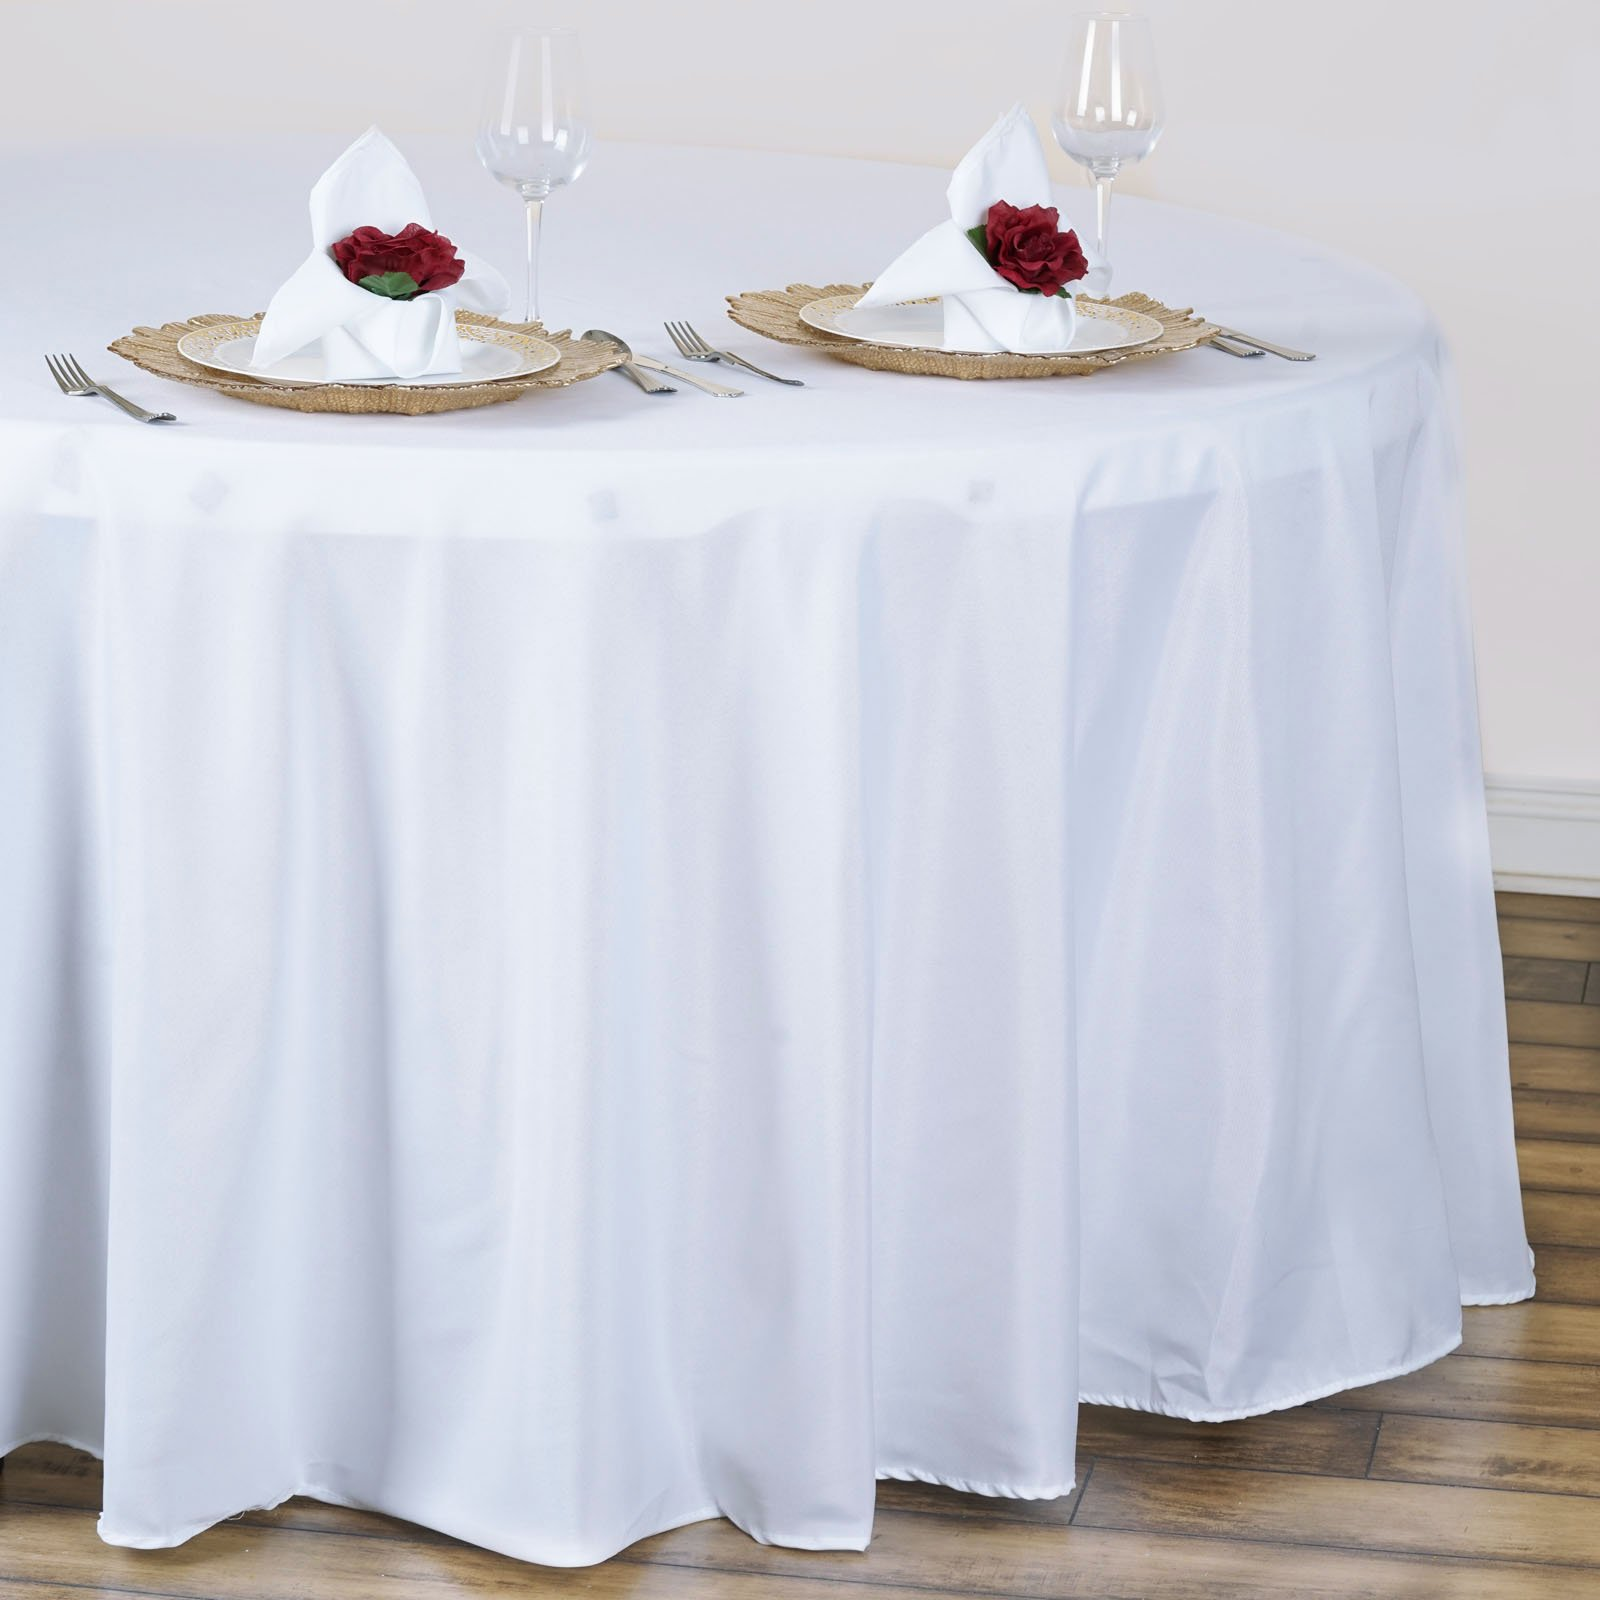 BalsaCircle 10 pcs 120 inch White Round Table Cloth Fabric Table Cover Linens for Wedding Tablecloths Polyester Reception Banquet Events Kitchen Dining by BalsaCircle Tablecloths